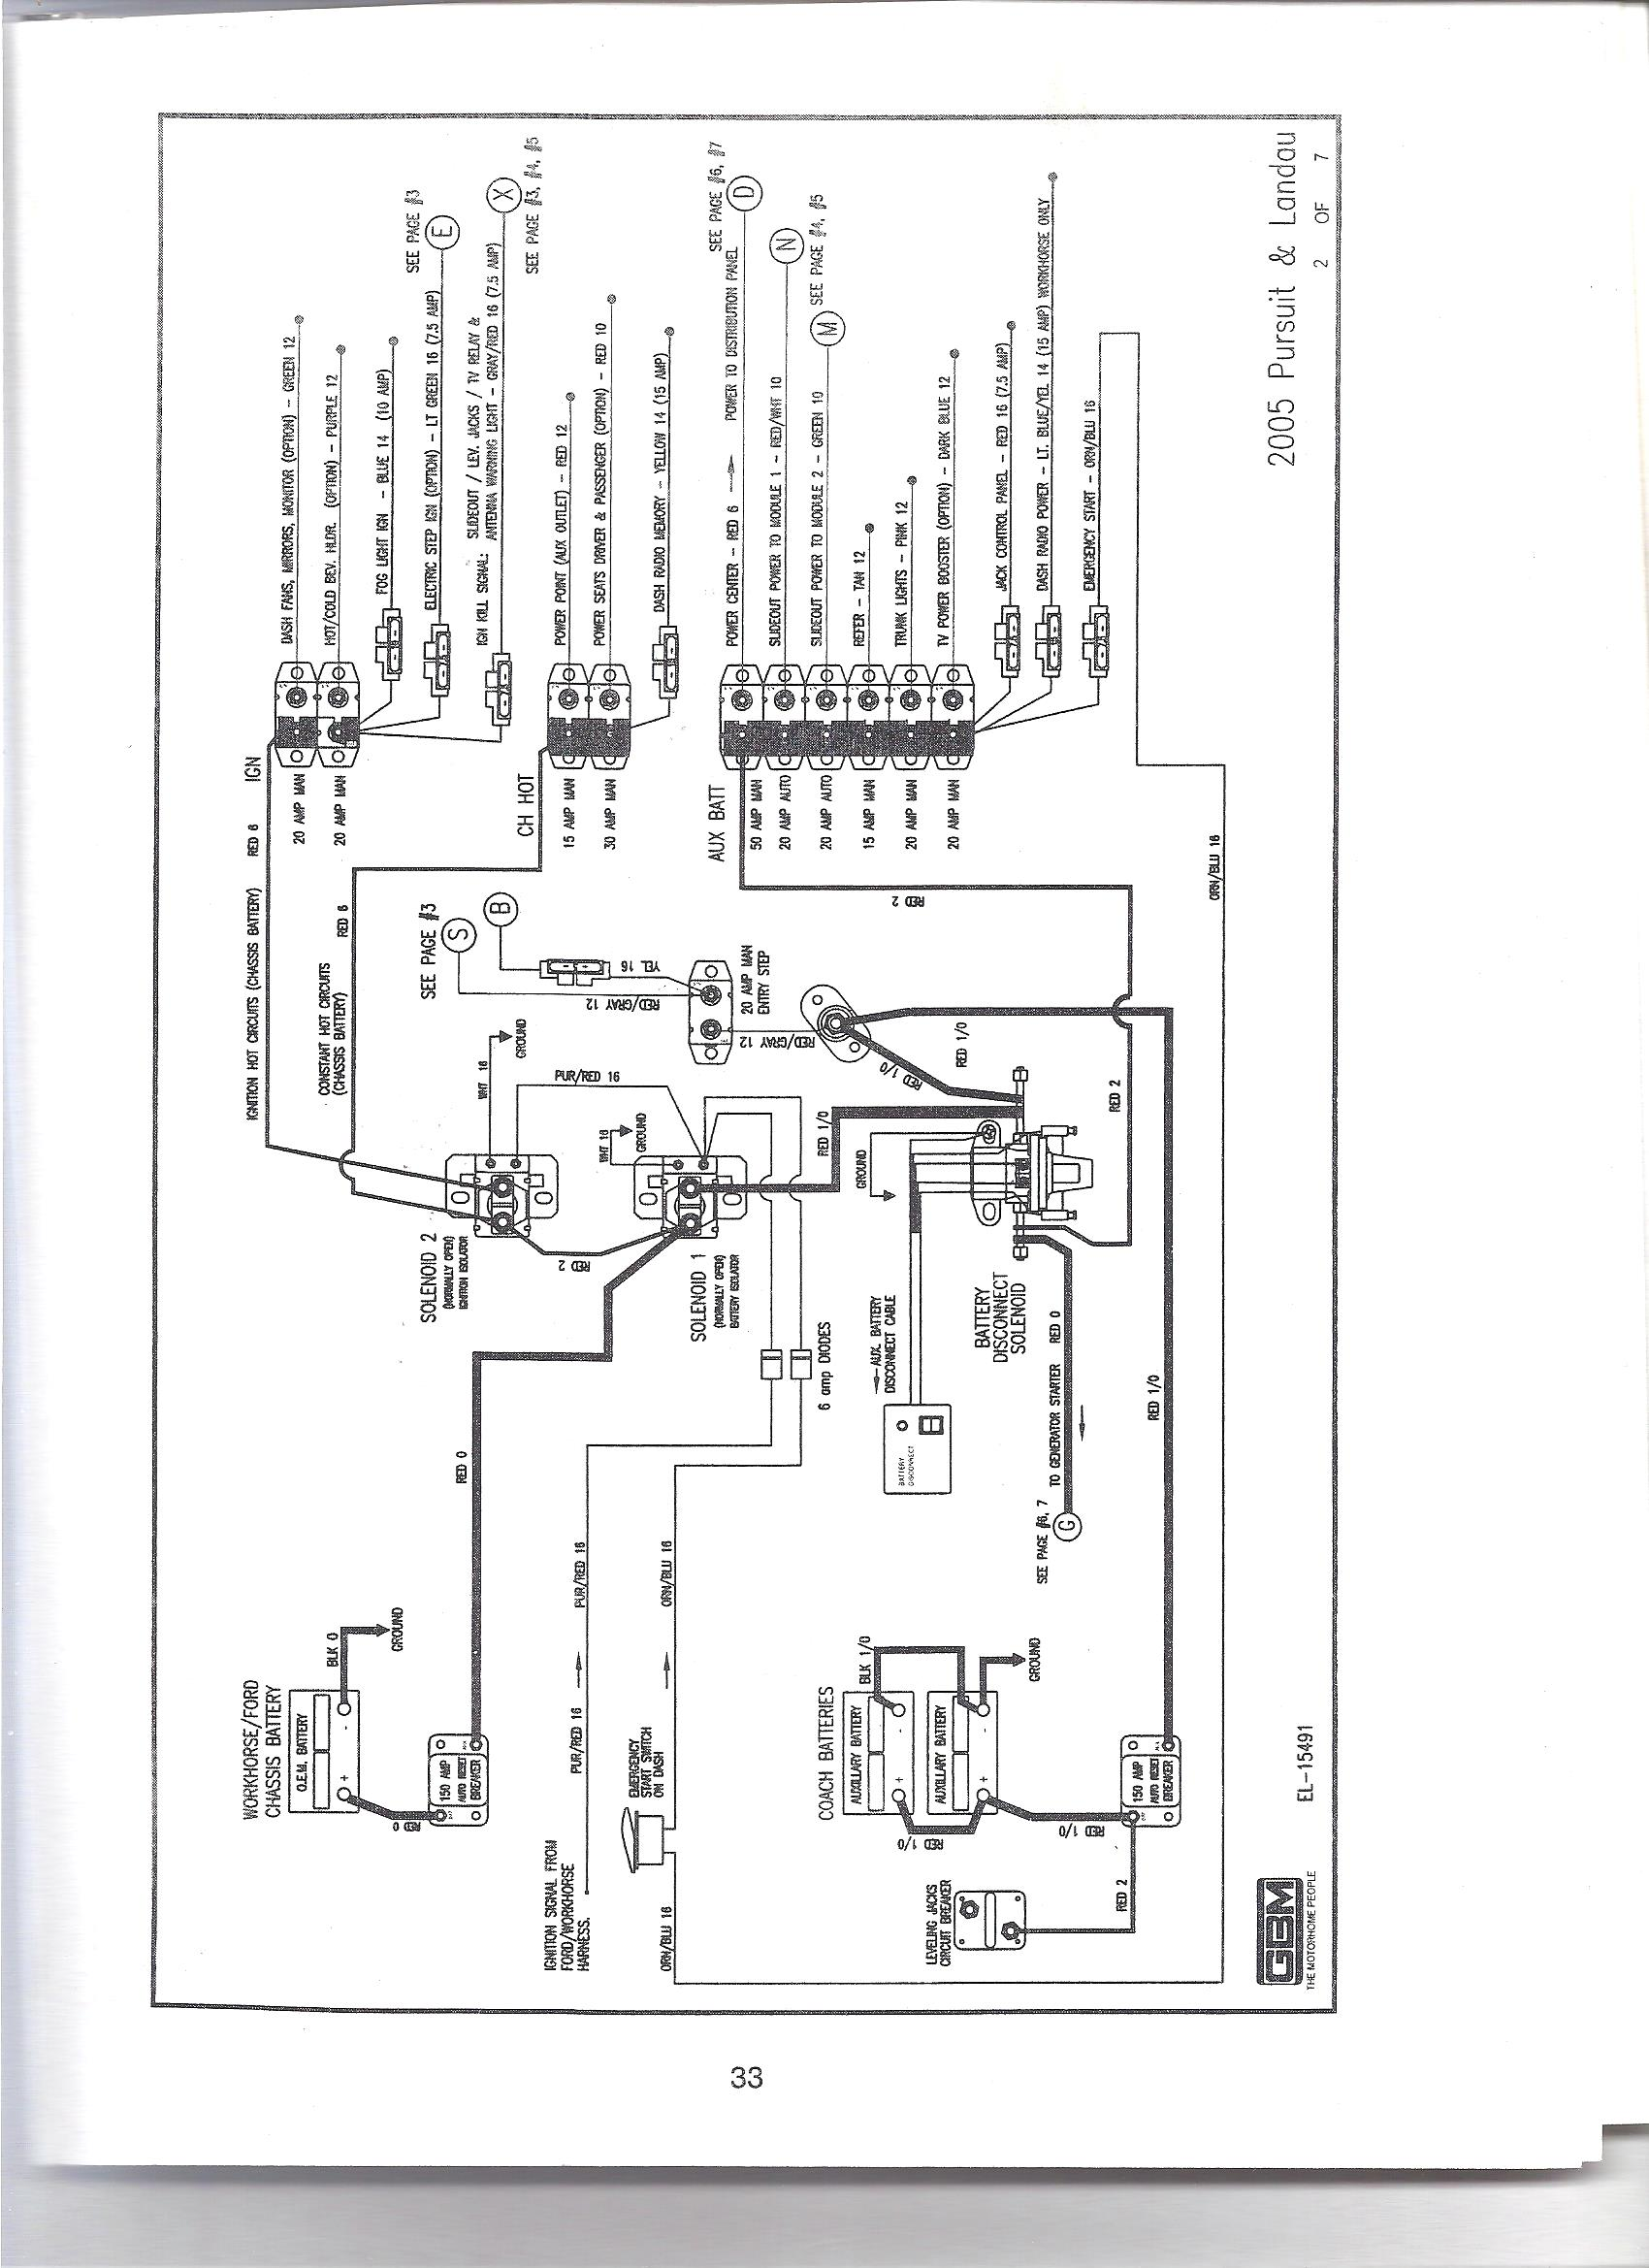 Wiring Diagram For House Lights : I have a georgie boy landau ft class rv with